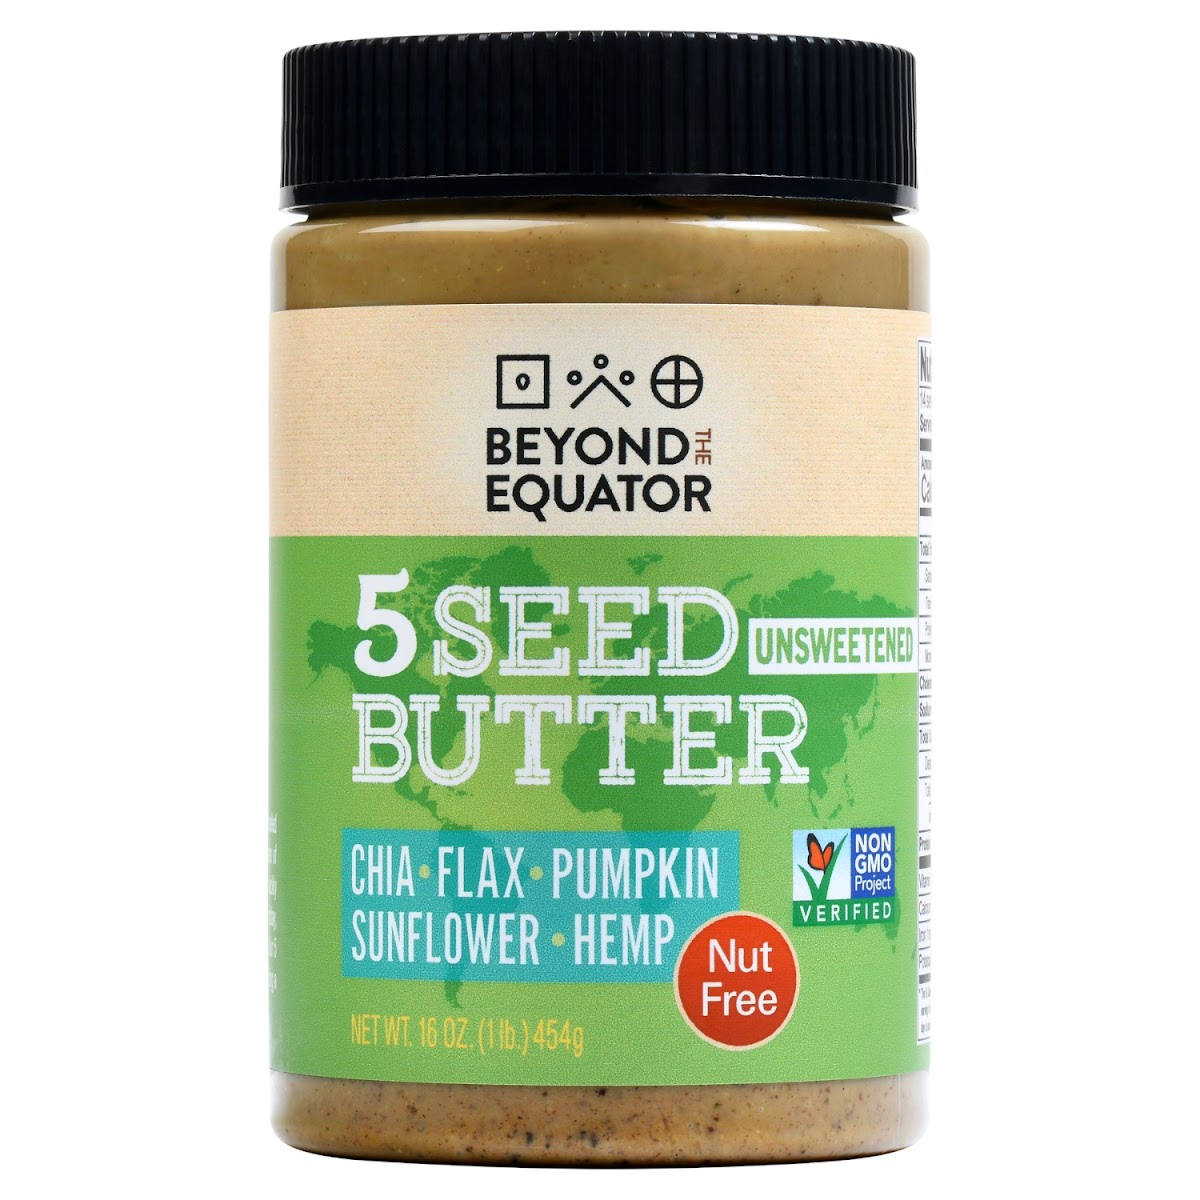 5 Seed Butter - Unsweetened